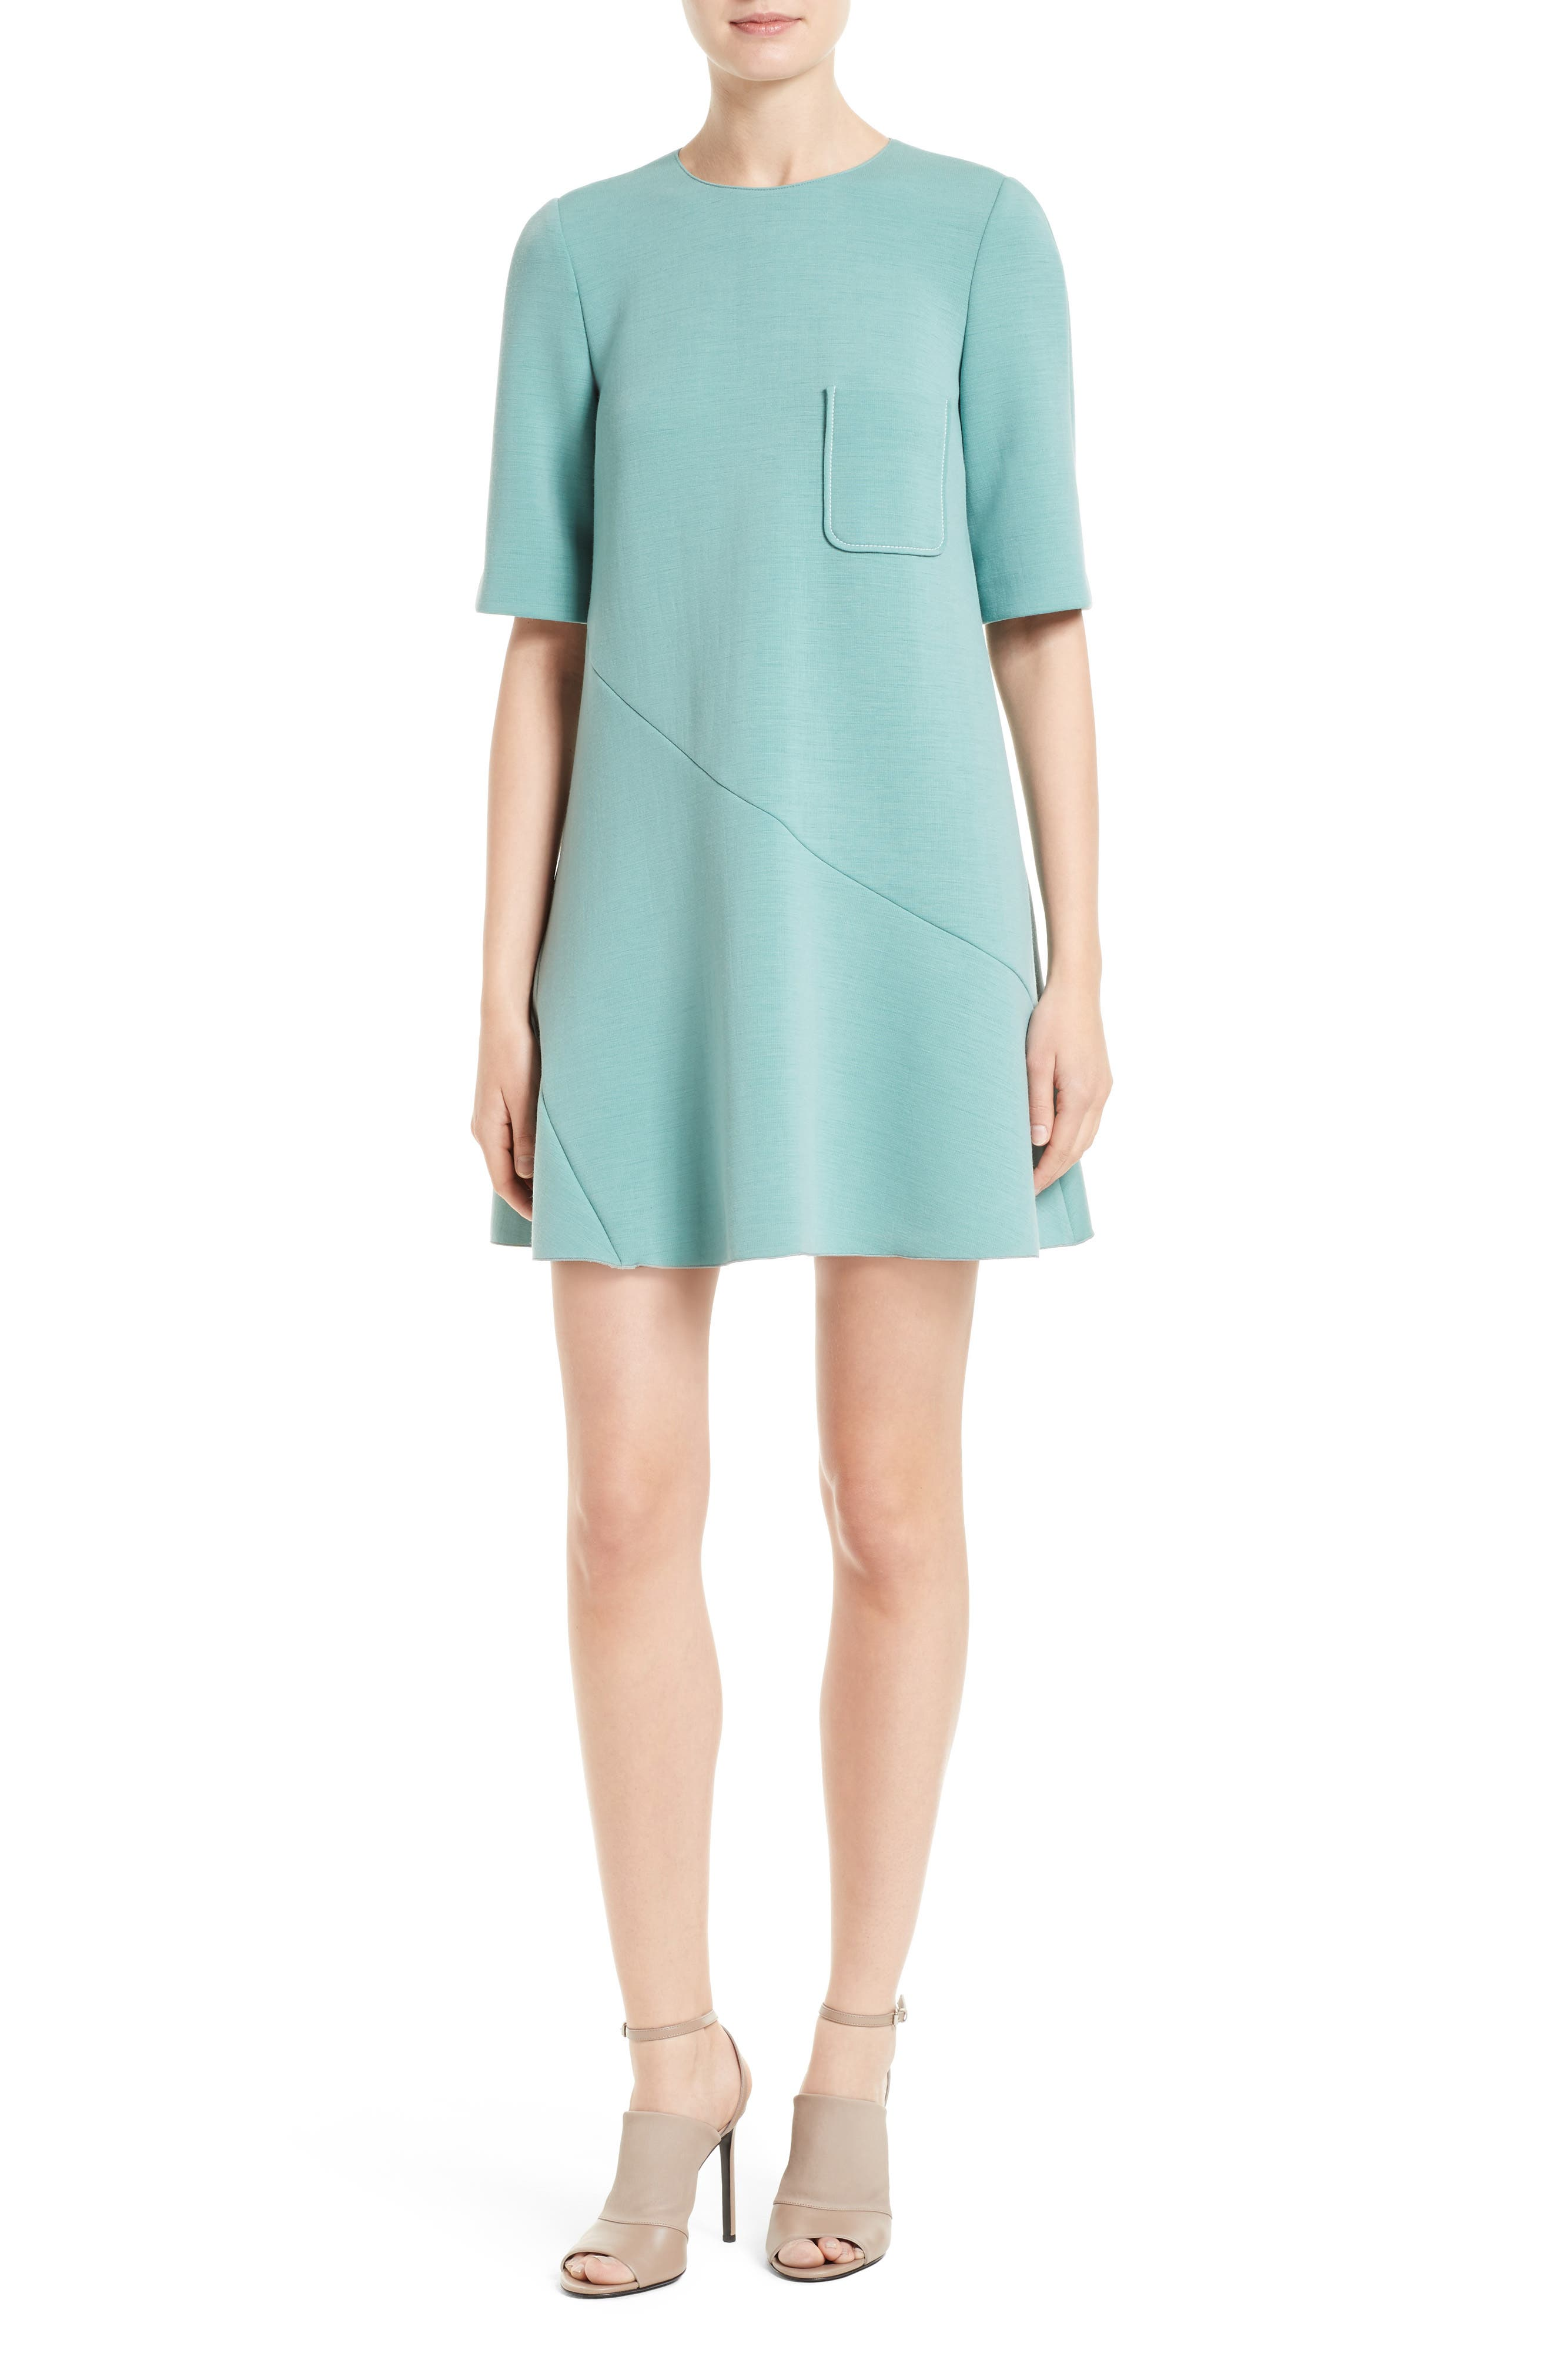 M Missoni Stretch Knit Trapeze Dress